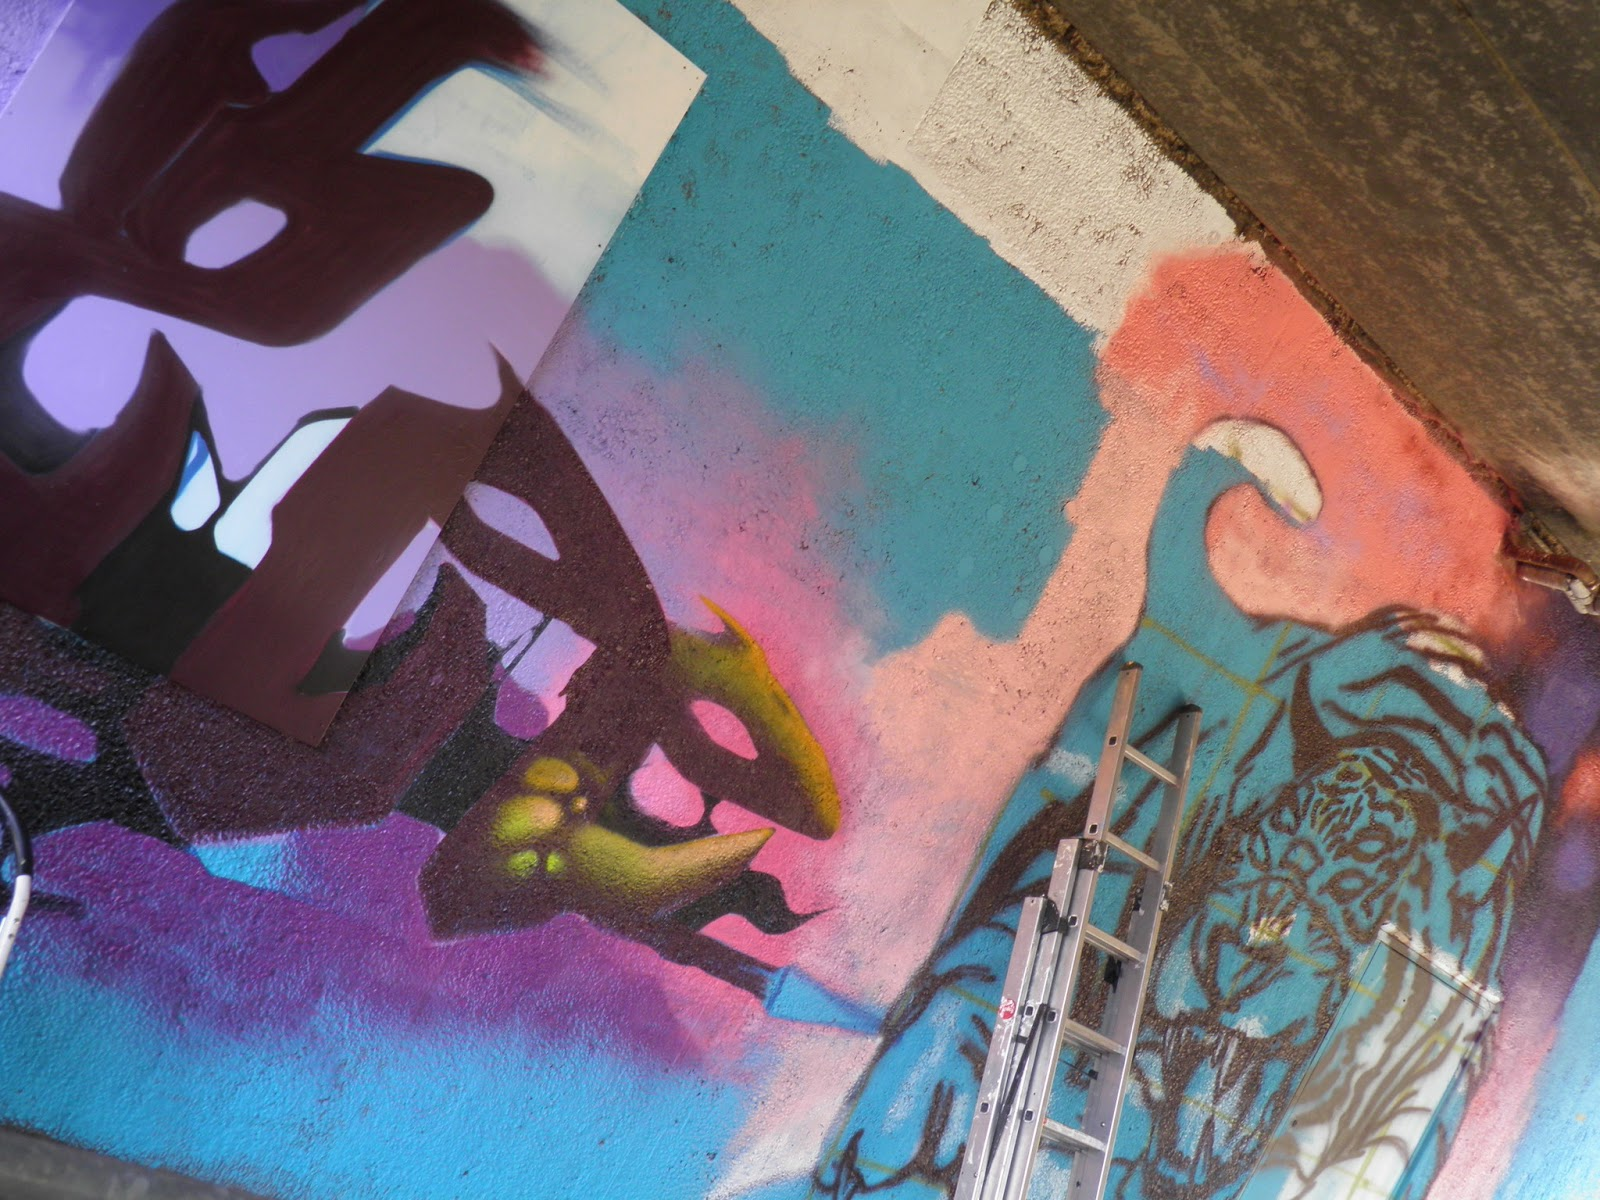 a46667d25eec9 ... see more of our ugly urban areas covered in true graffiti art like  this